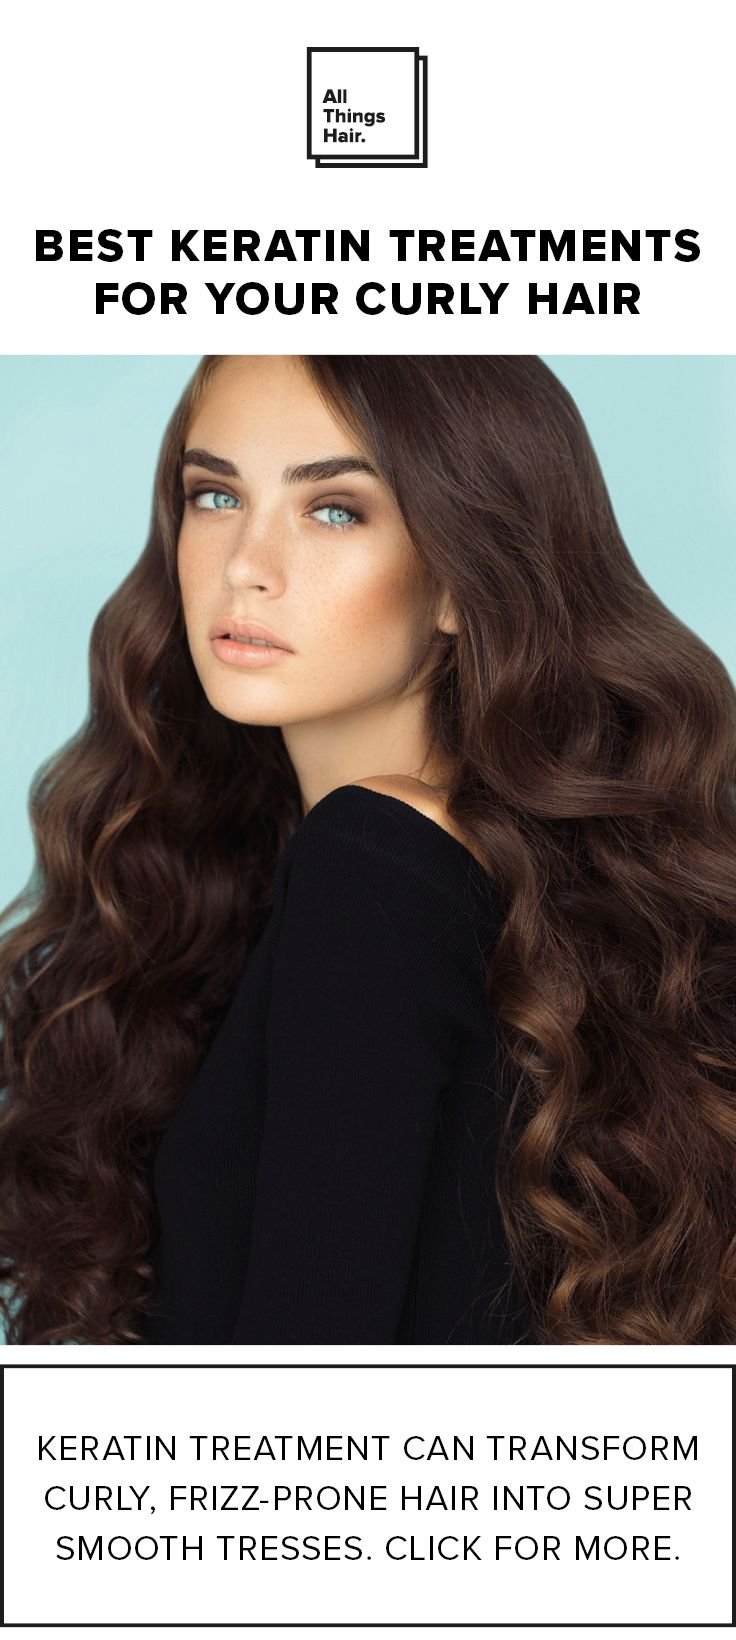 Magic straight perm vs keratin - You May Of Heard About Keratin Treatments But Do You Know Their Benefits And Which